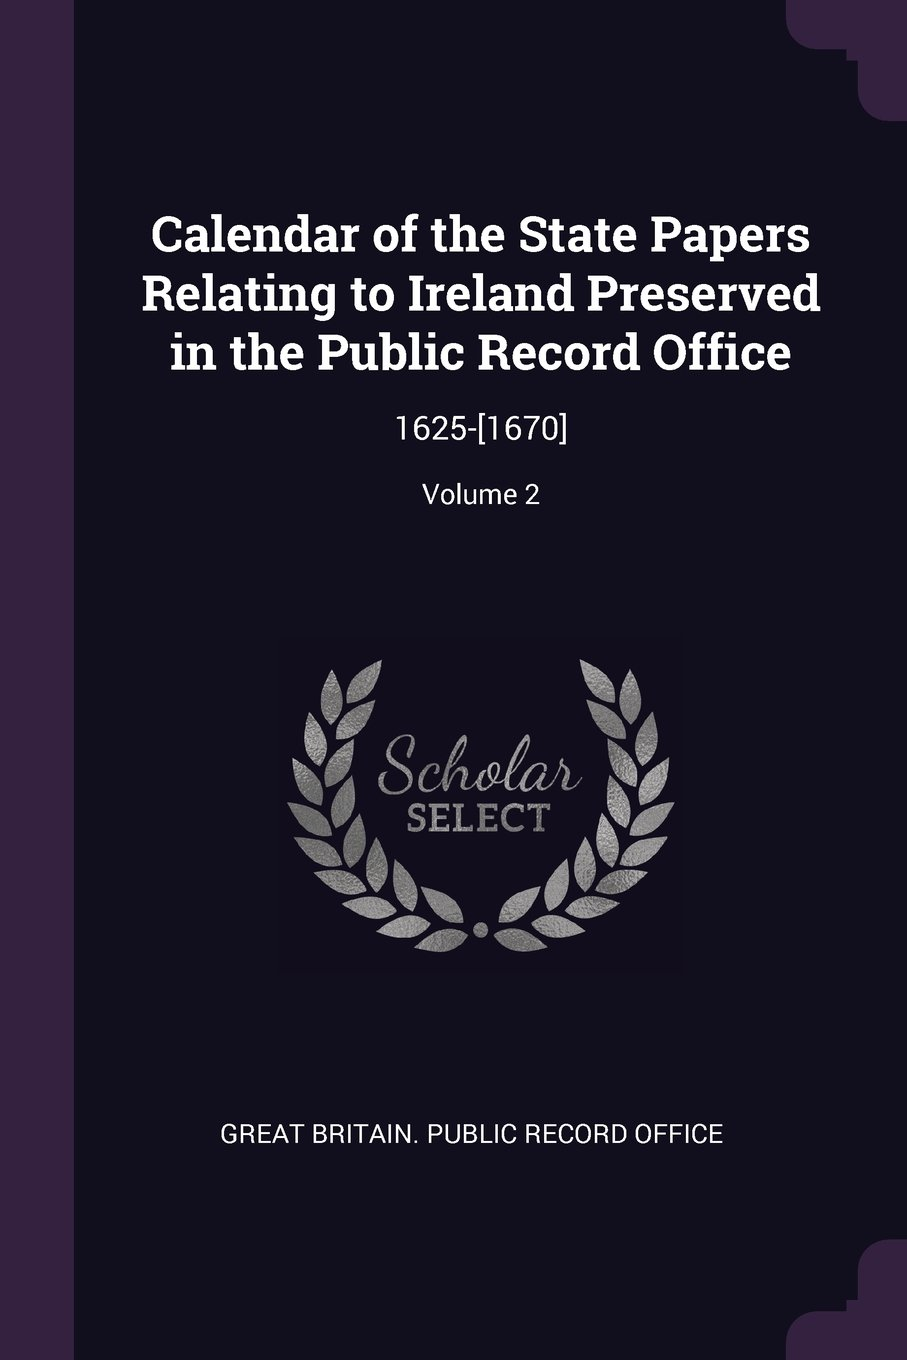 Download Calendar of the State Papers Relating to Ireland Preserved in the Public Record Office: 1625-[1670]; Volume 2 ebook